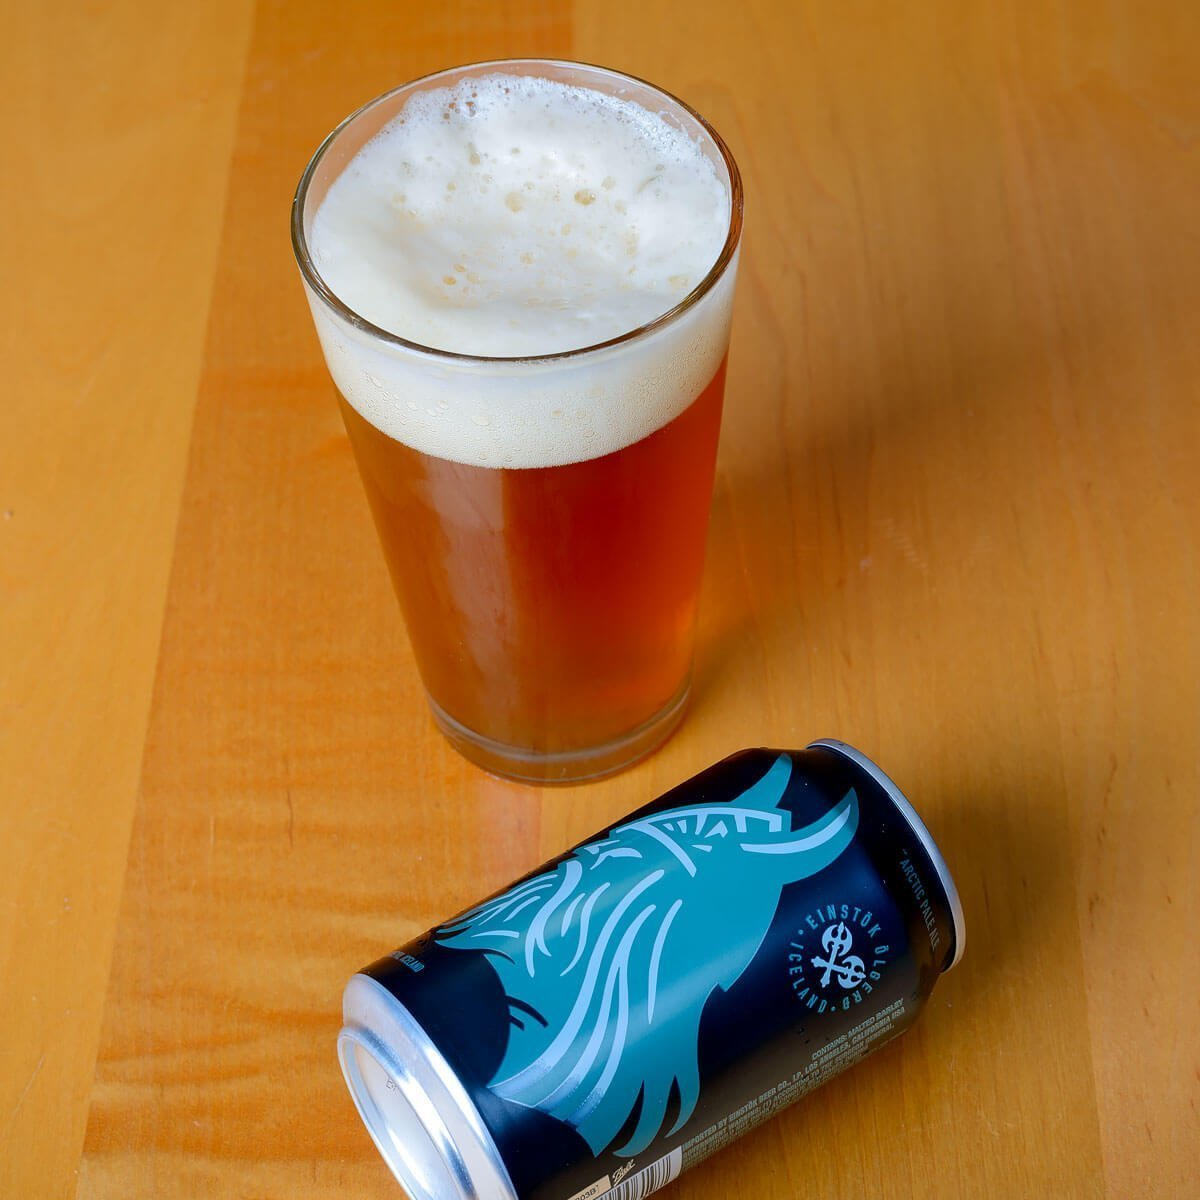 Icelandic Arctic Pale Ale is an American-style Pale Ale brewed by Einstök Ölgerð that balances grass and citrus hops with toffee and toasted bread.